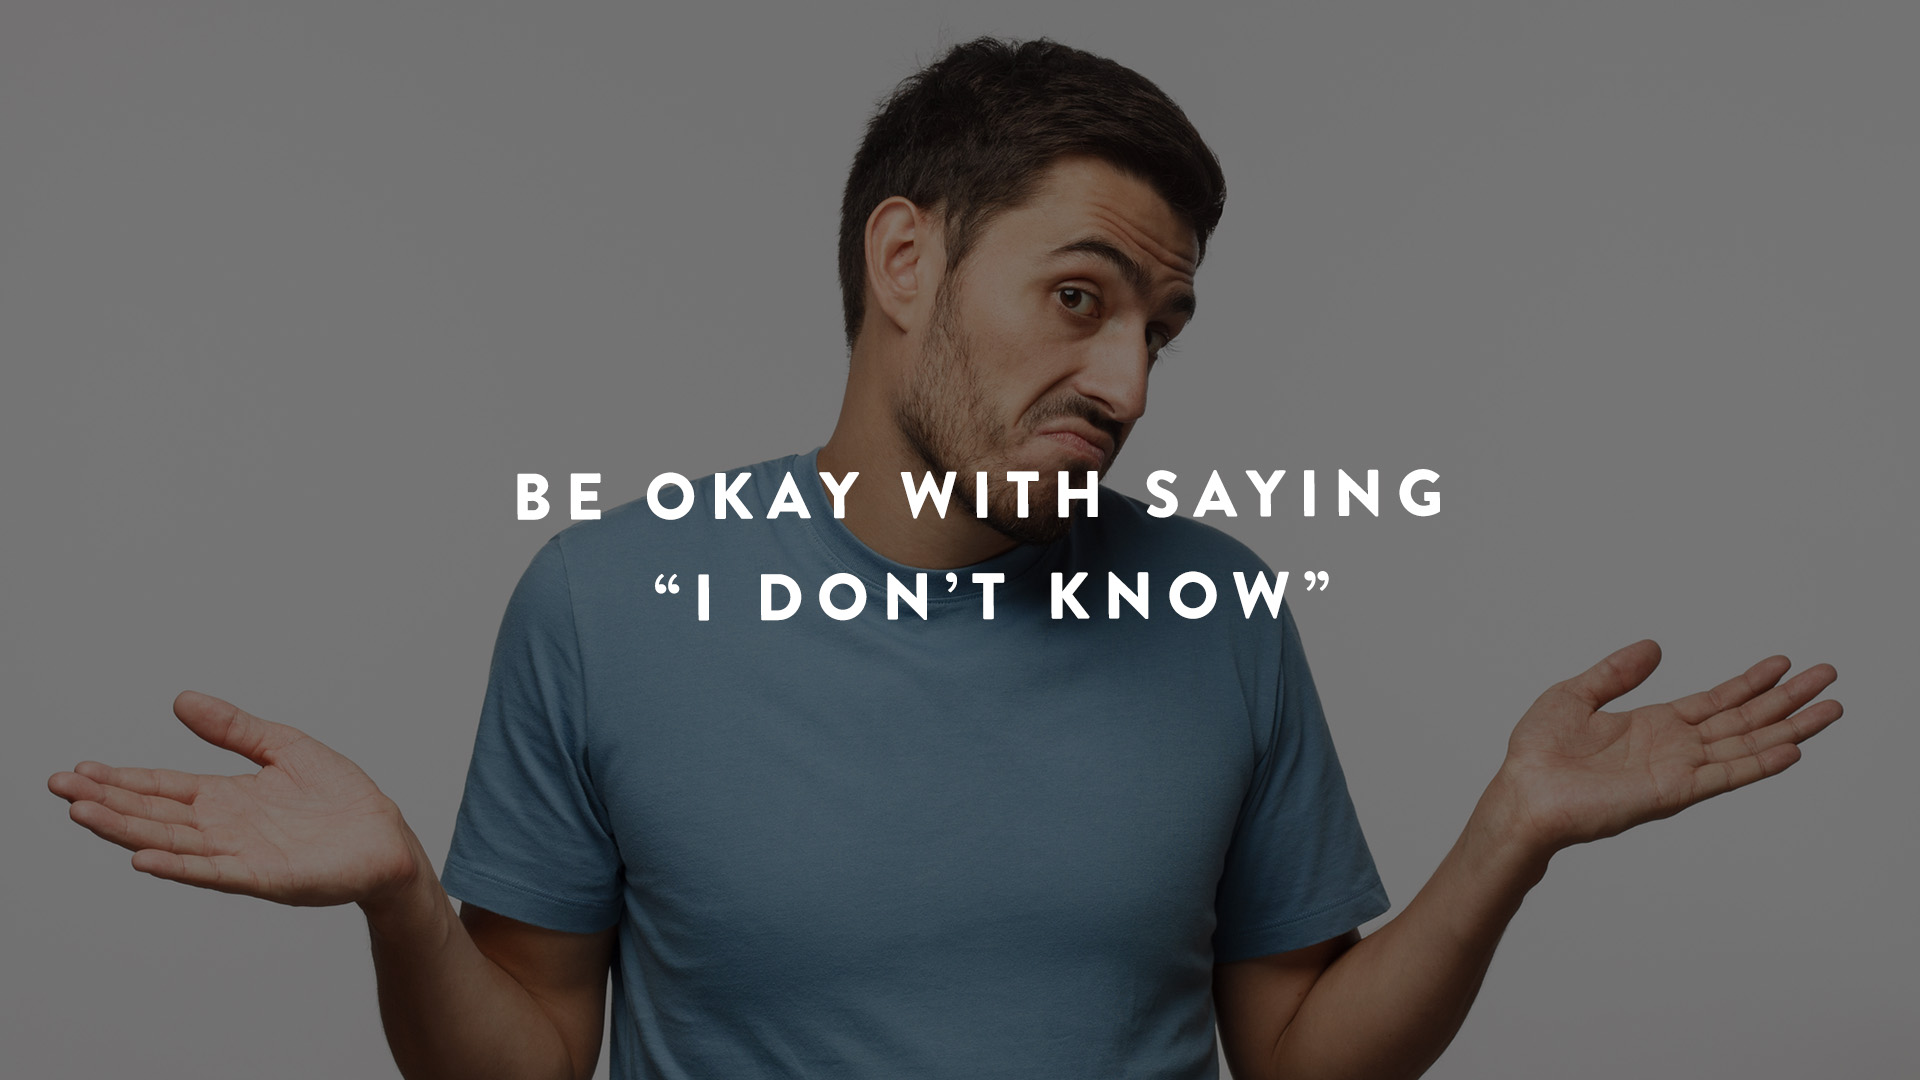 Be okay with saying I don't know